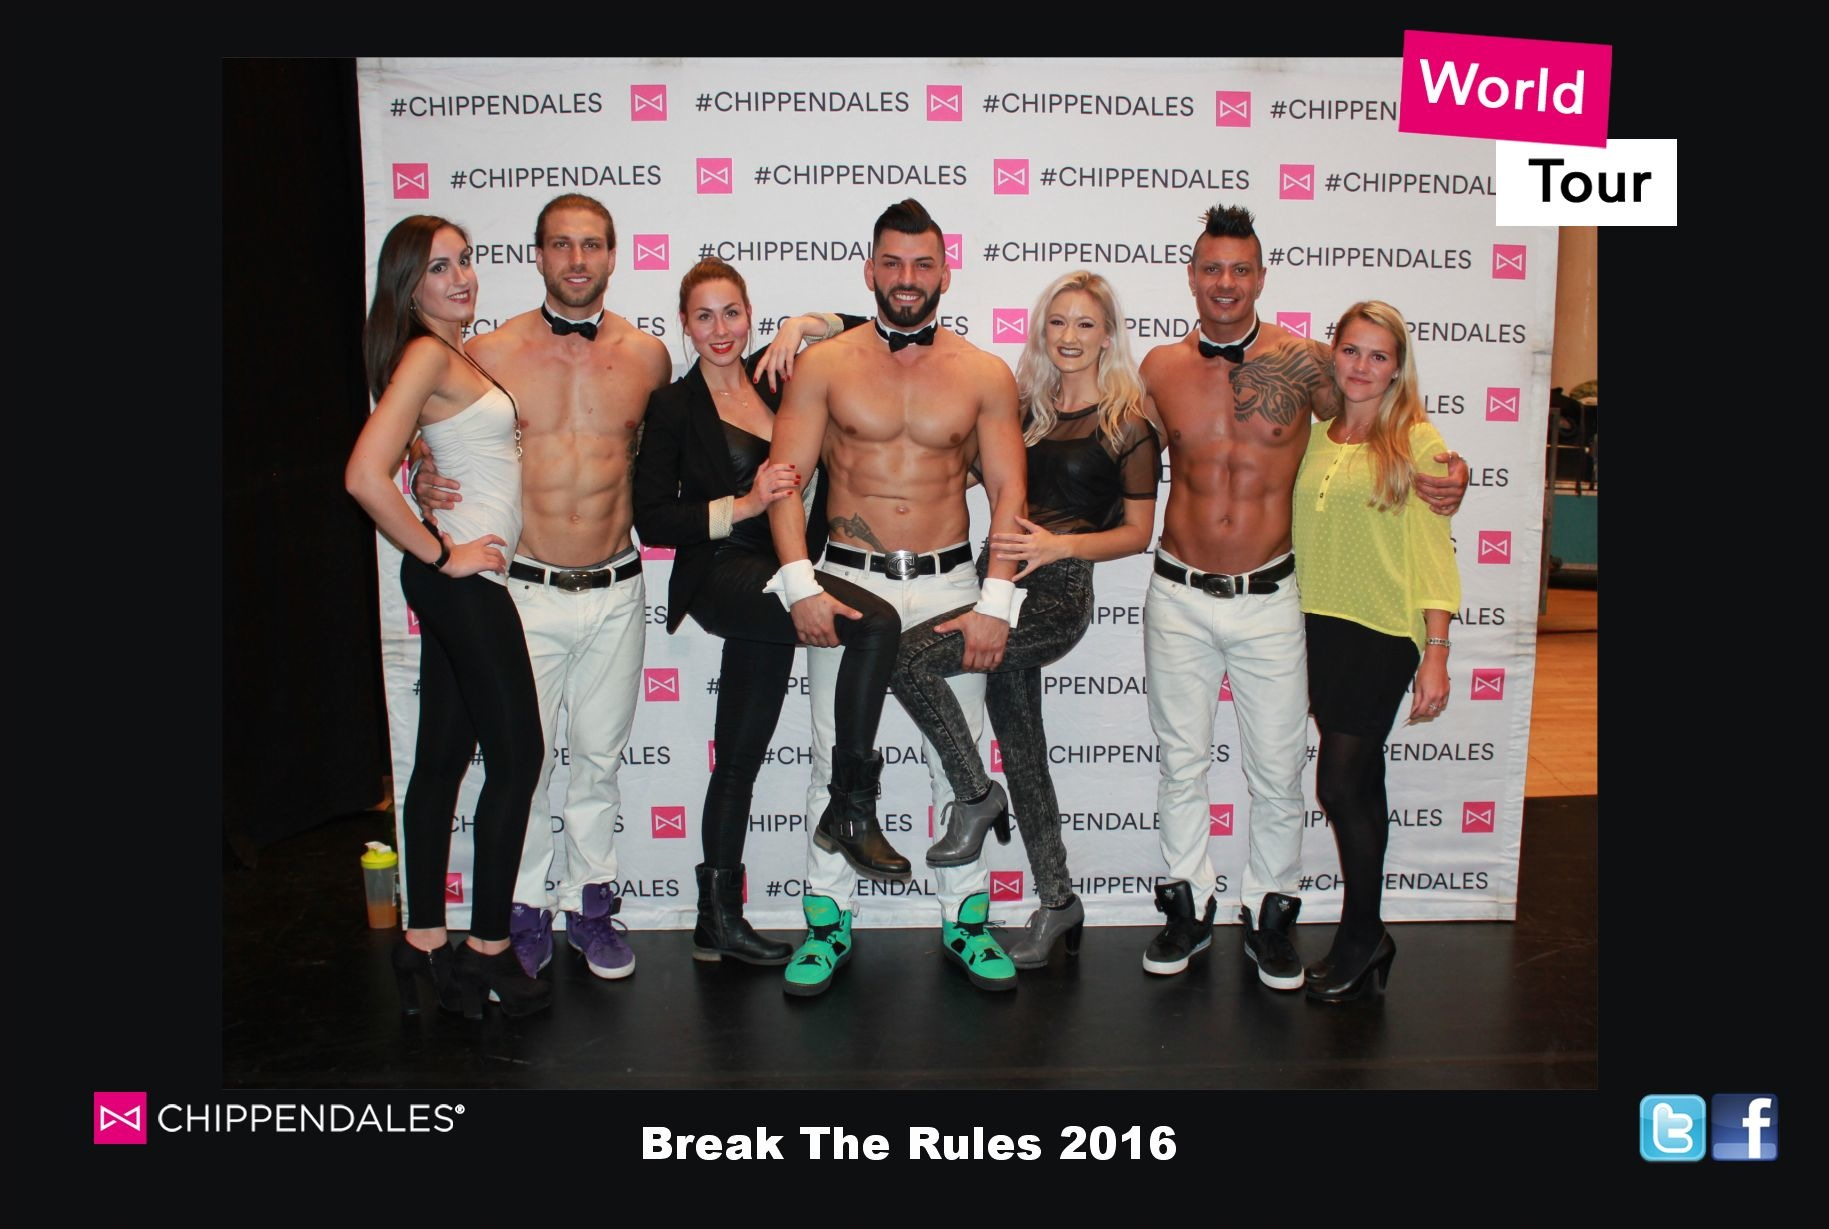 The Chippendales Break The Rules Tour 2016